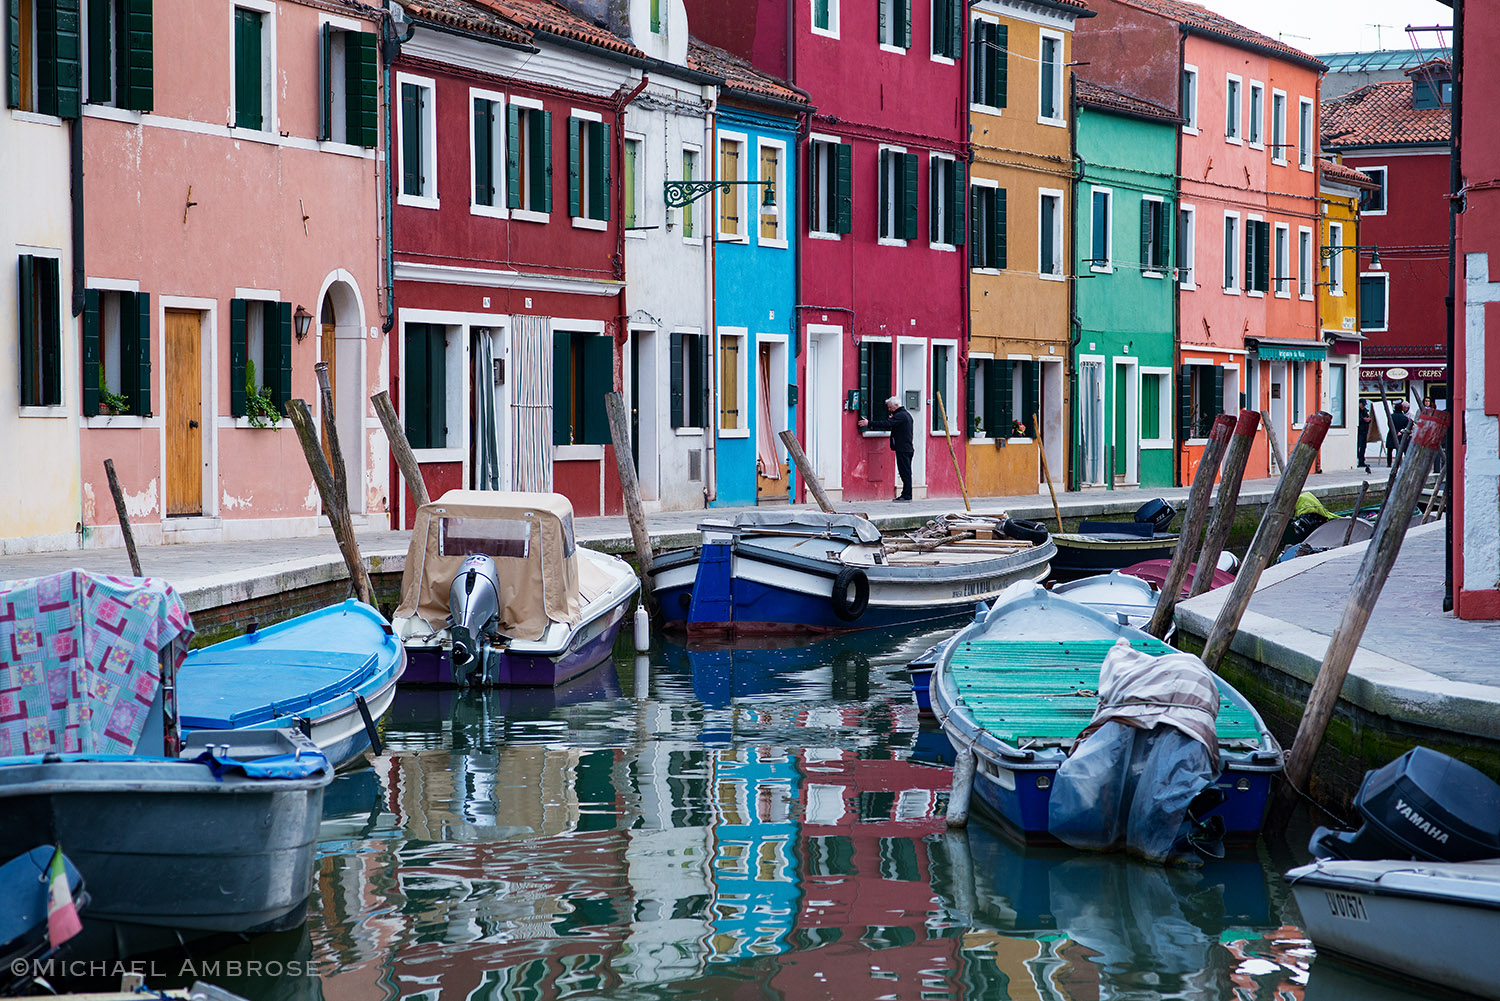 Burano, Italy draws crowds with brightly painted buildings, reflections in the canals, handmade arts, special cuisine, and much more.